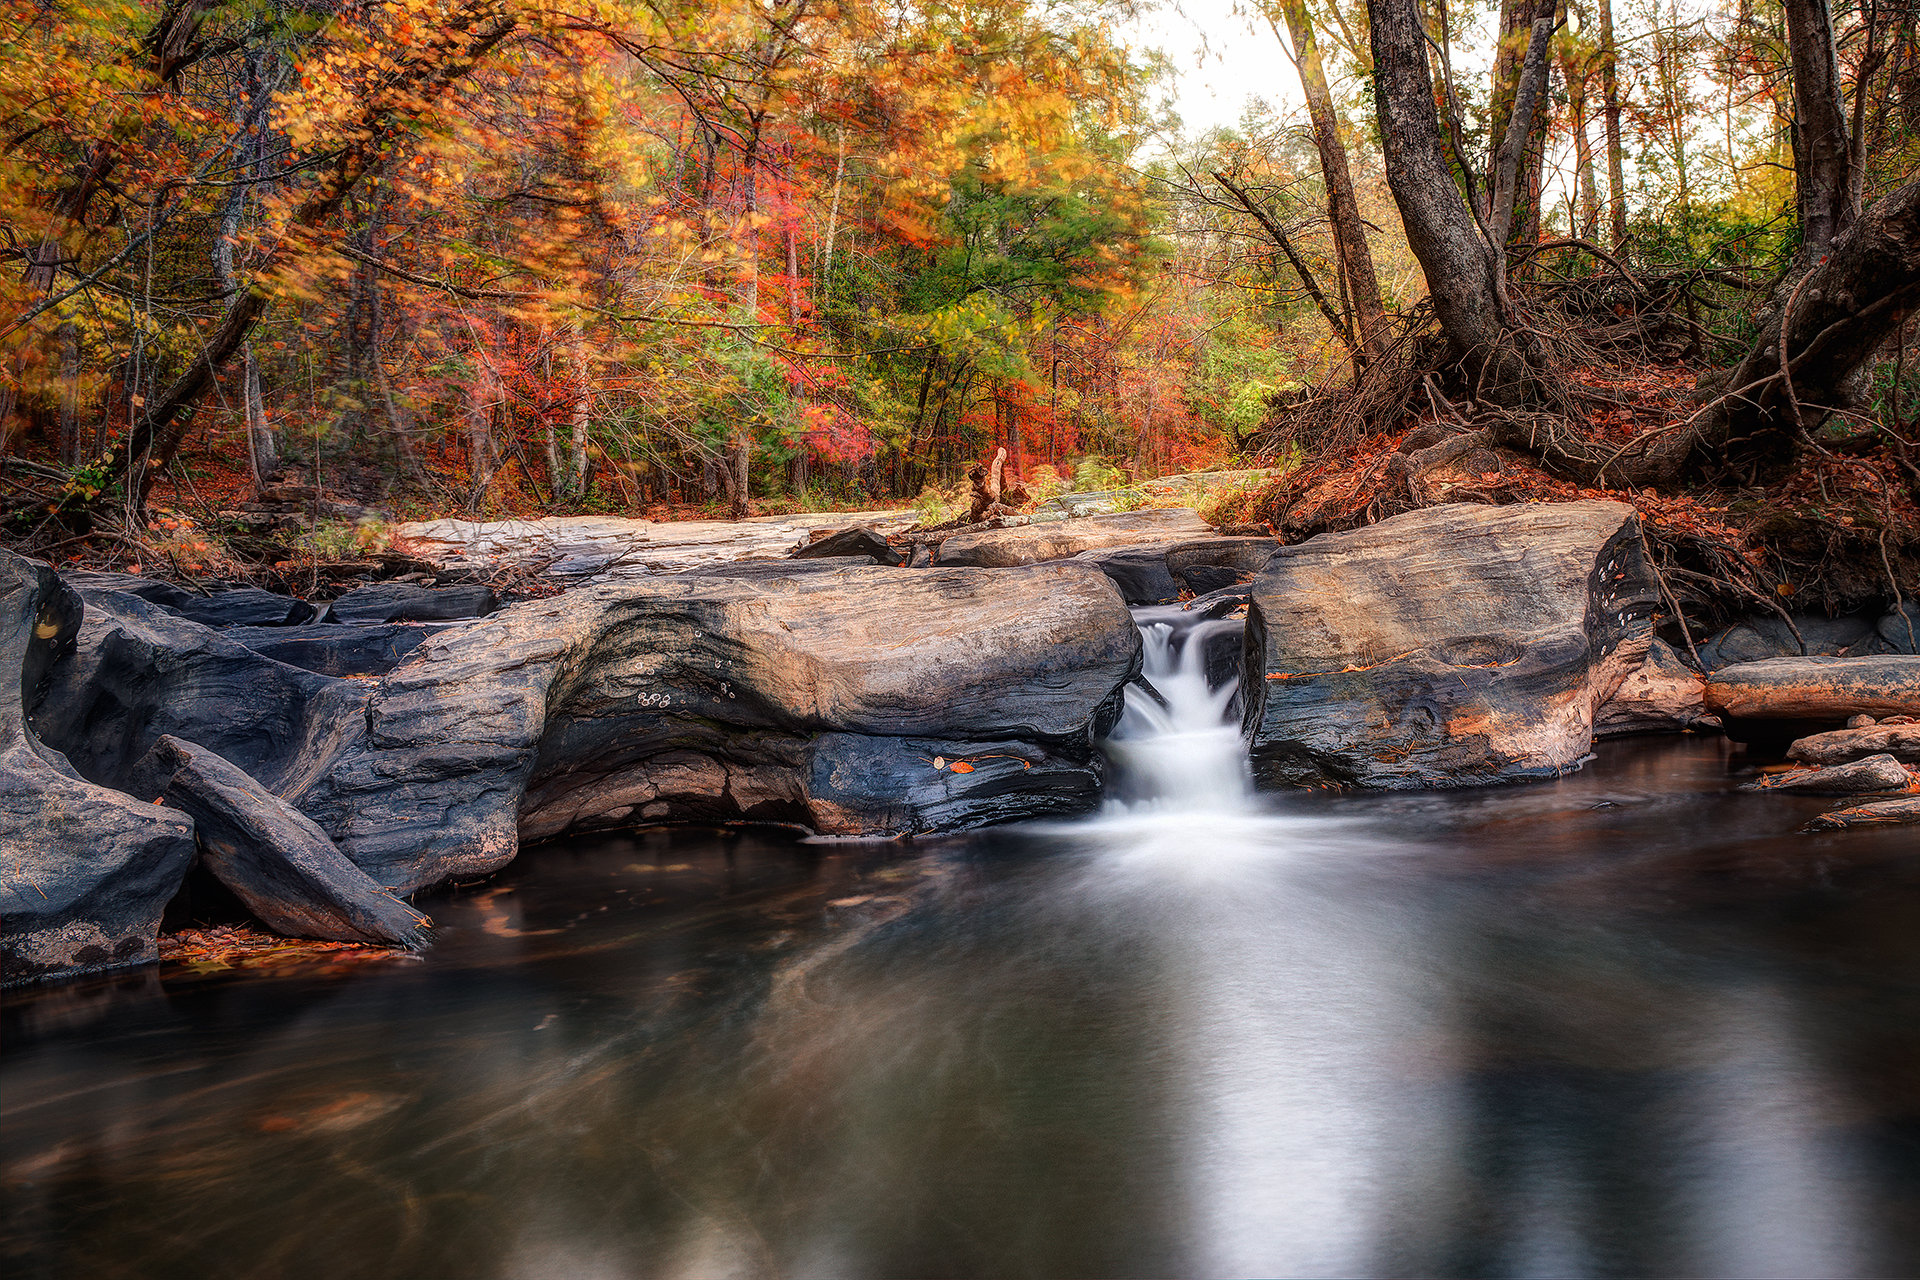 Sweetwater Creek State Park - Sweetwater Falls